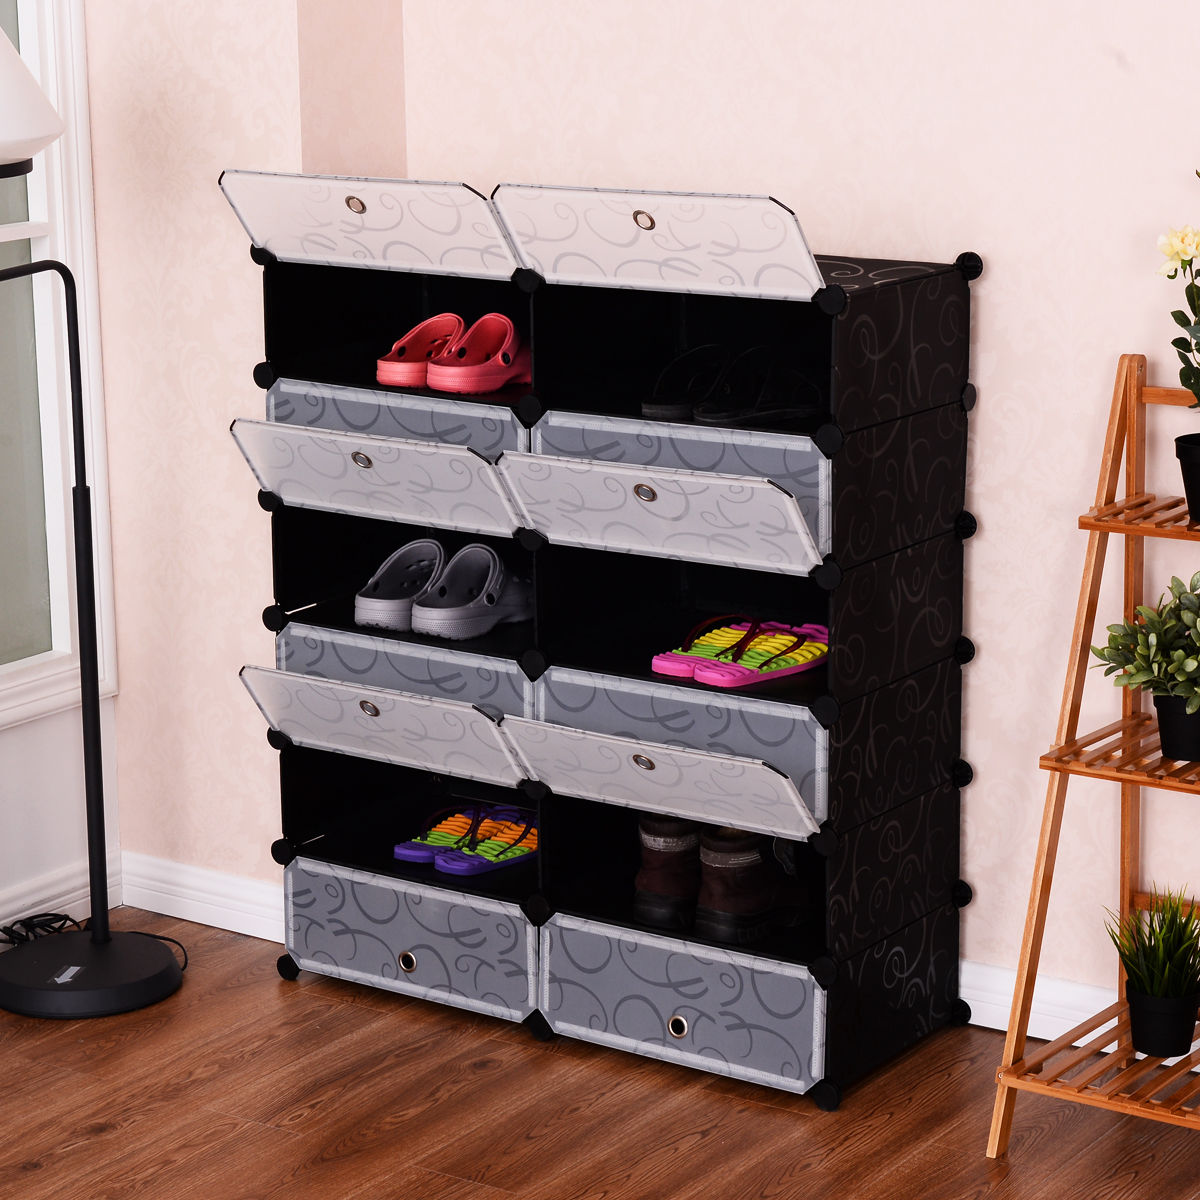 Costway 12 Cubic Portable Shoe Rack Shelf Cabinet Storage Closet Organizer Home Furni